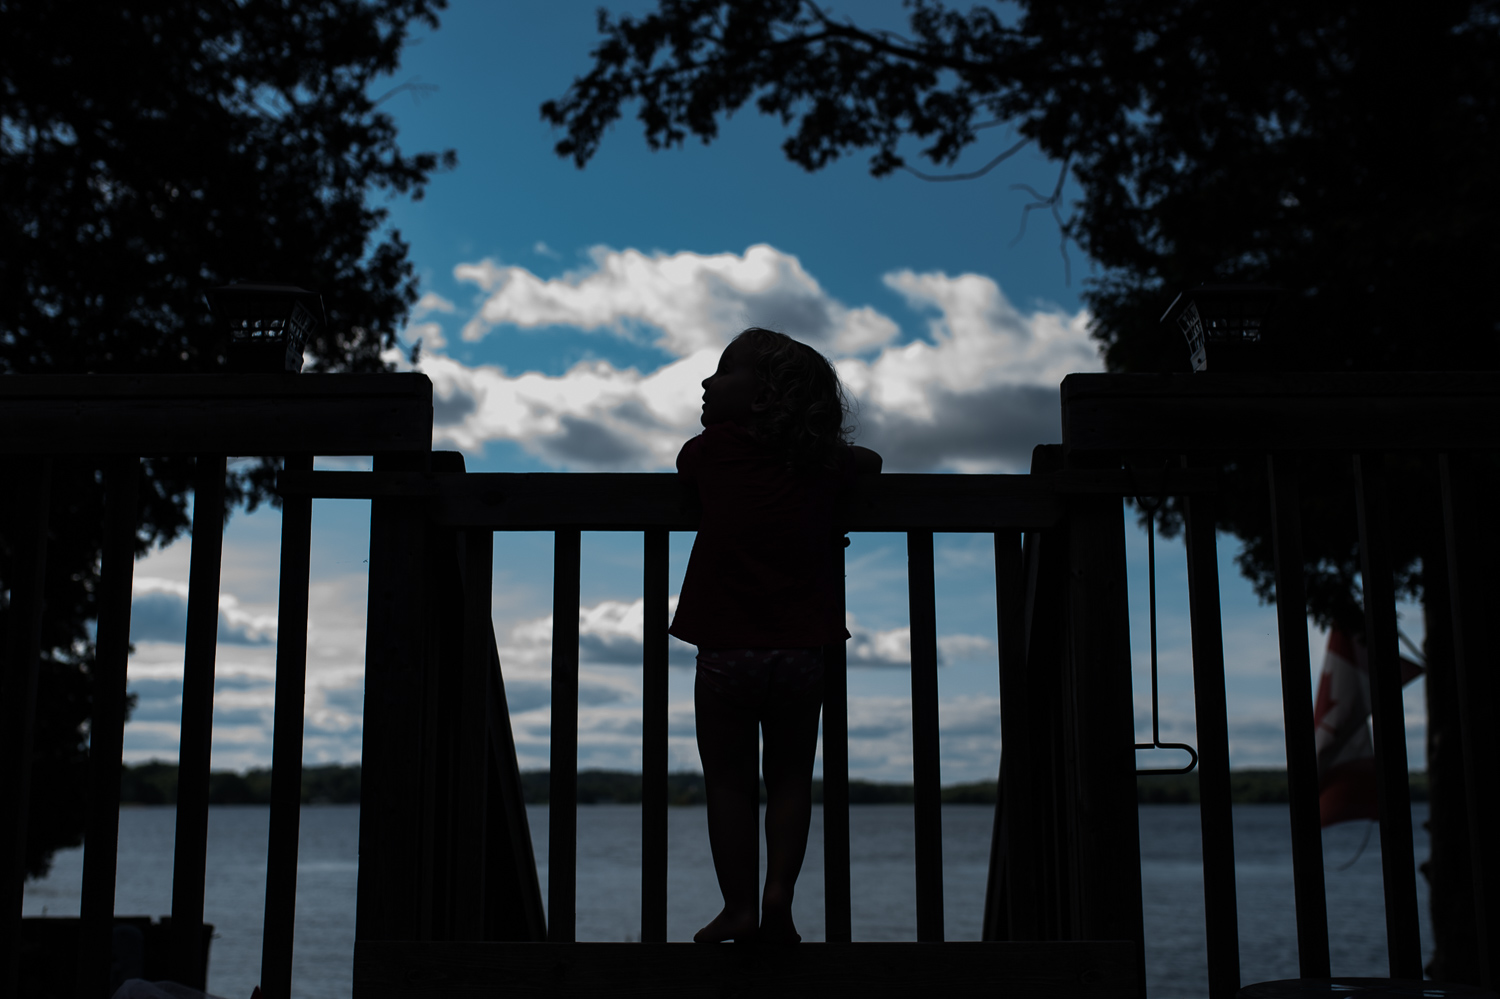 Toddler girl silhouetted against a gate framed by silhouetted trees and a bright blue sky with white fluffy clouds.